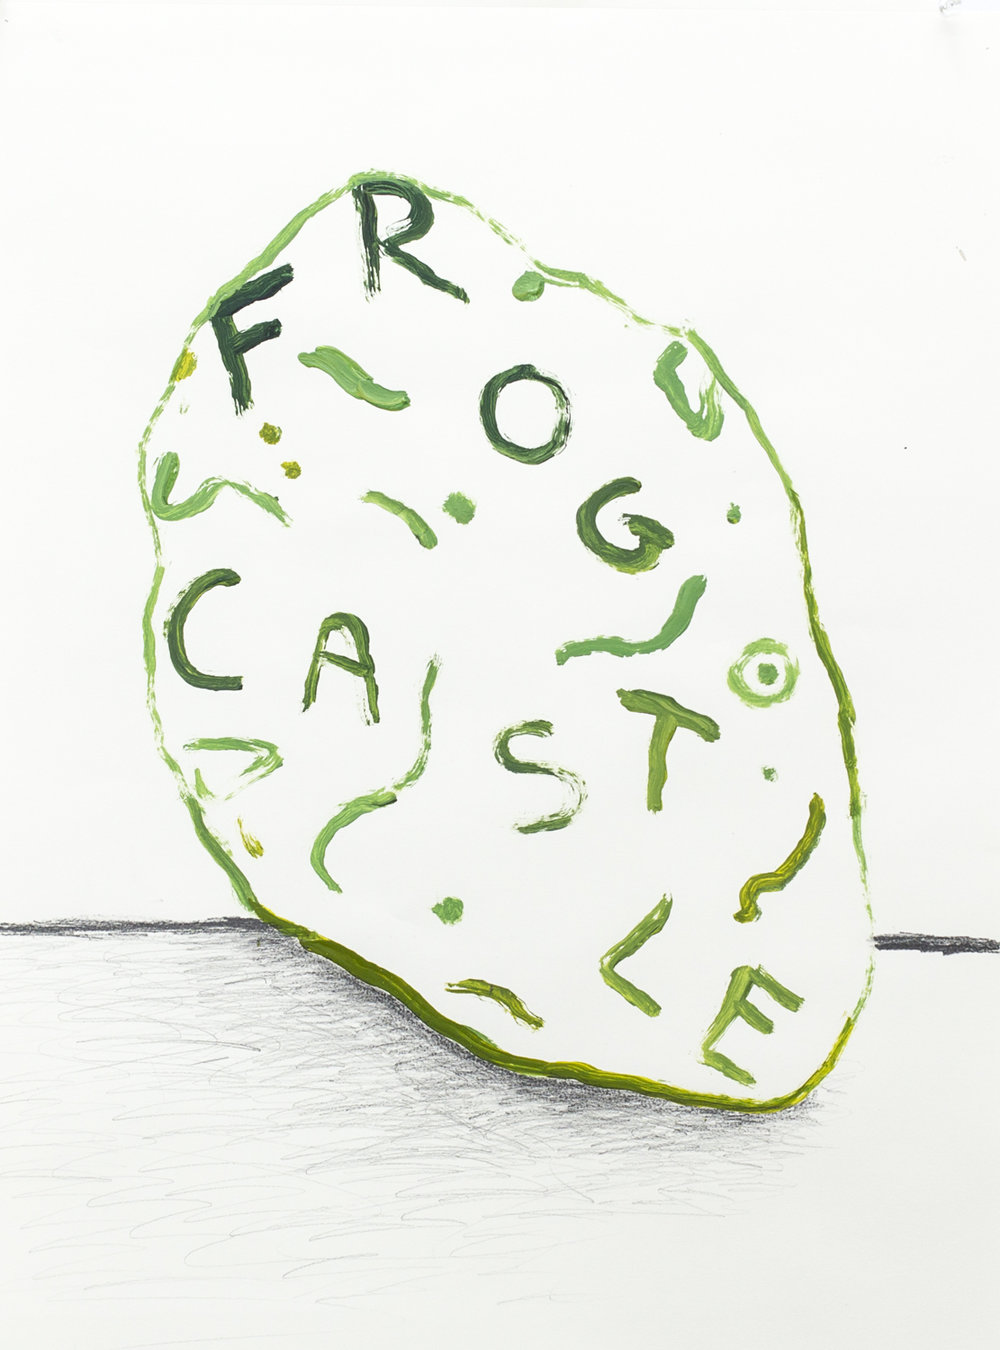 Frog Castle, 2017, acrylic and graphite on paper. 24 x 20 inches